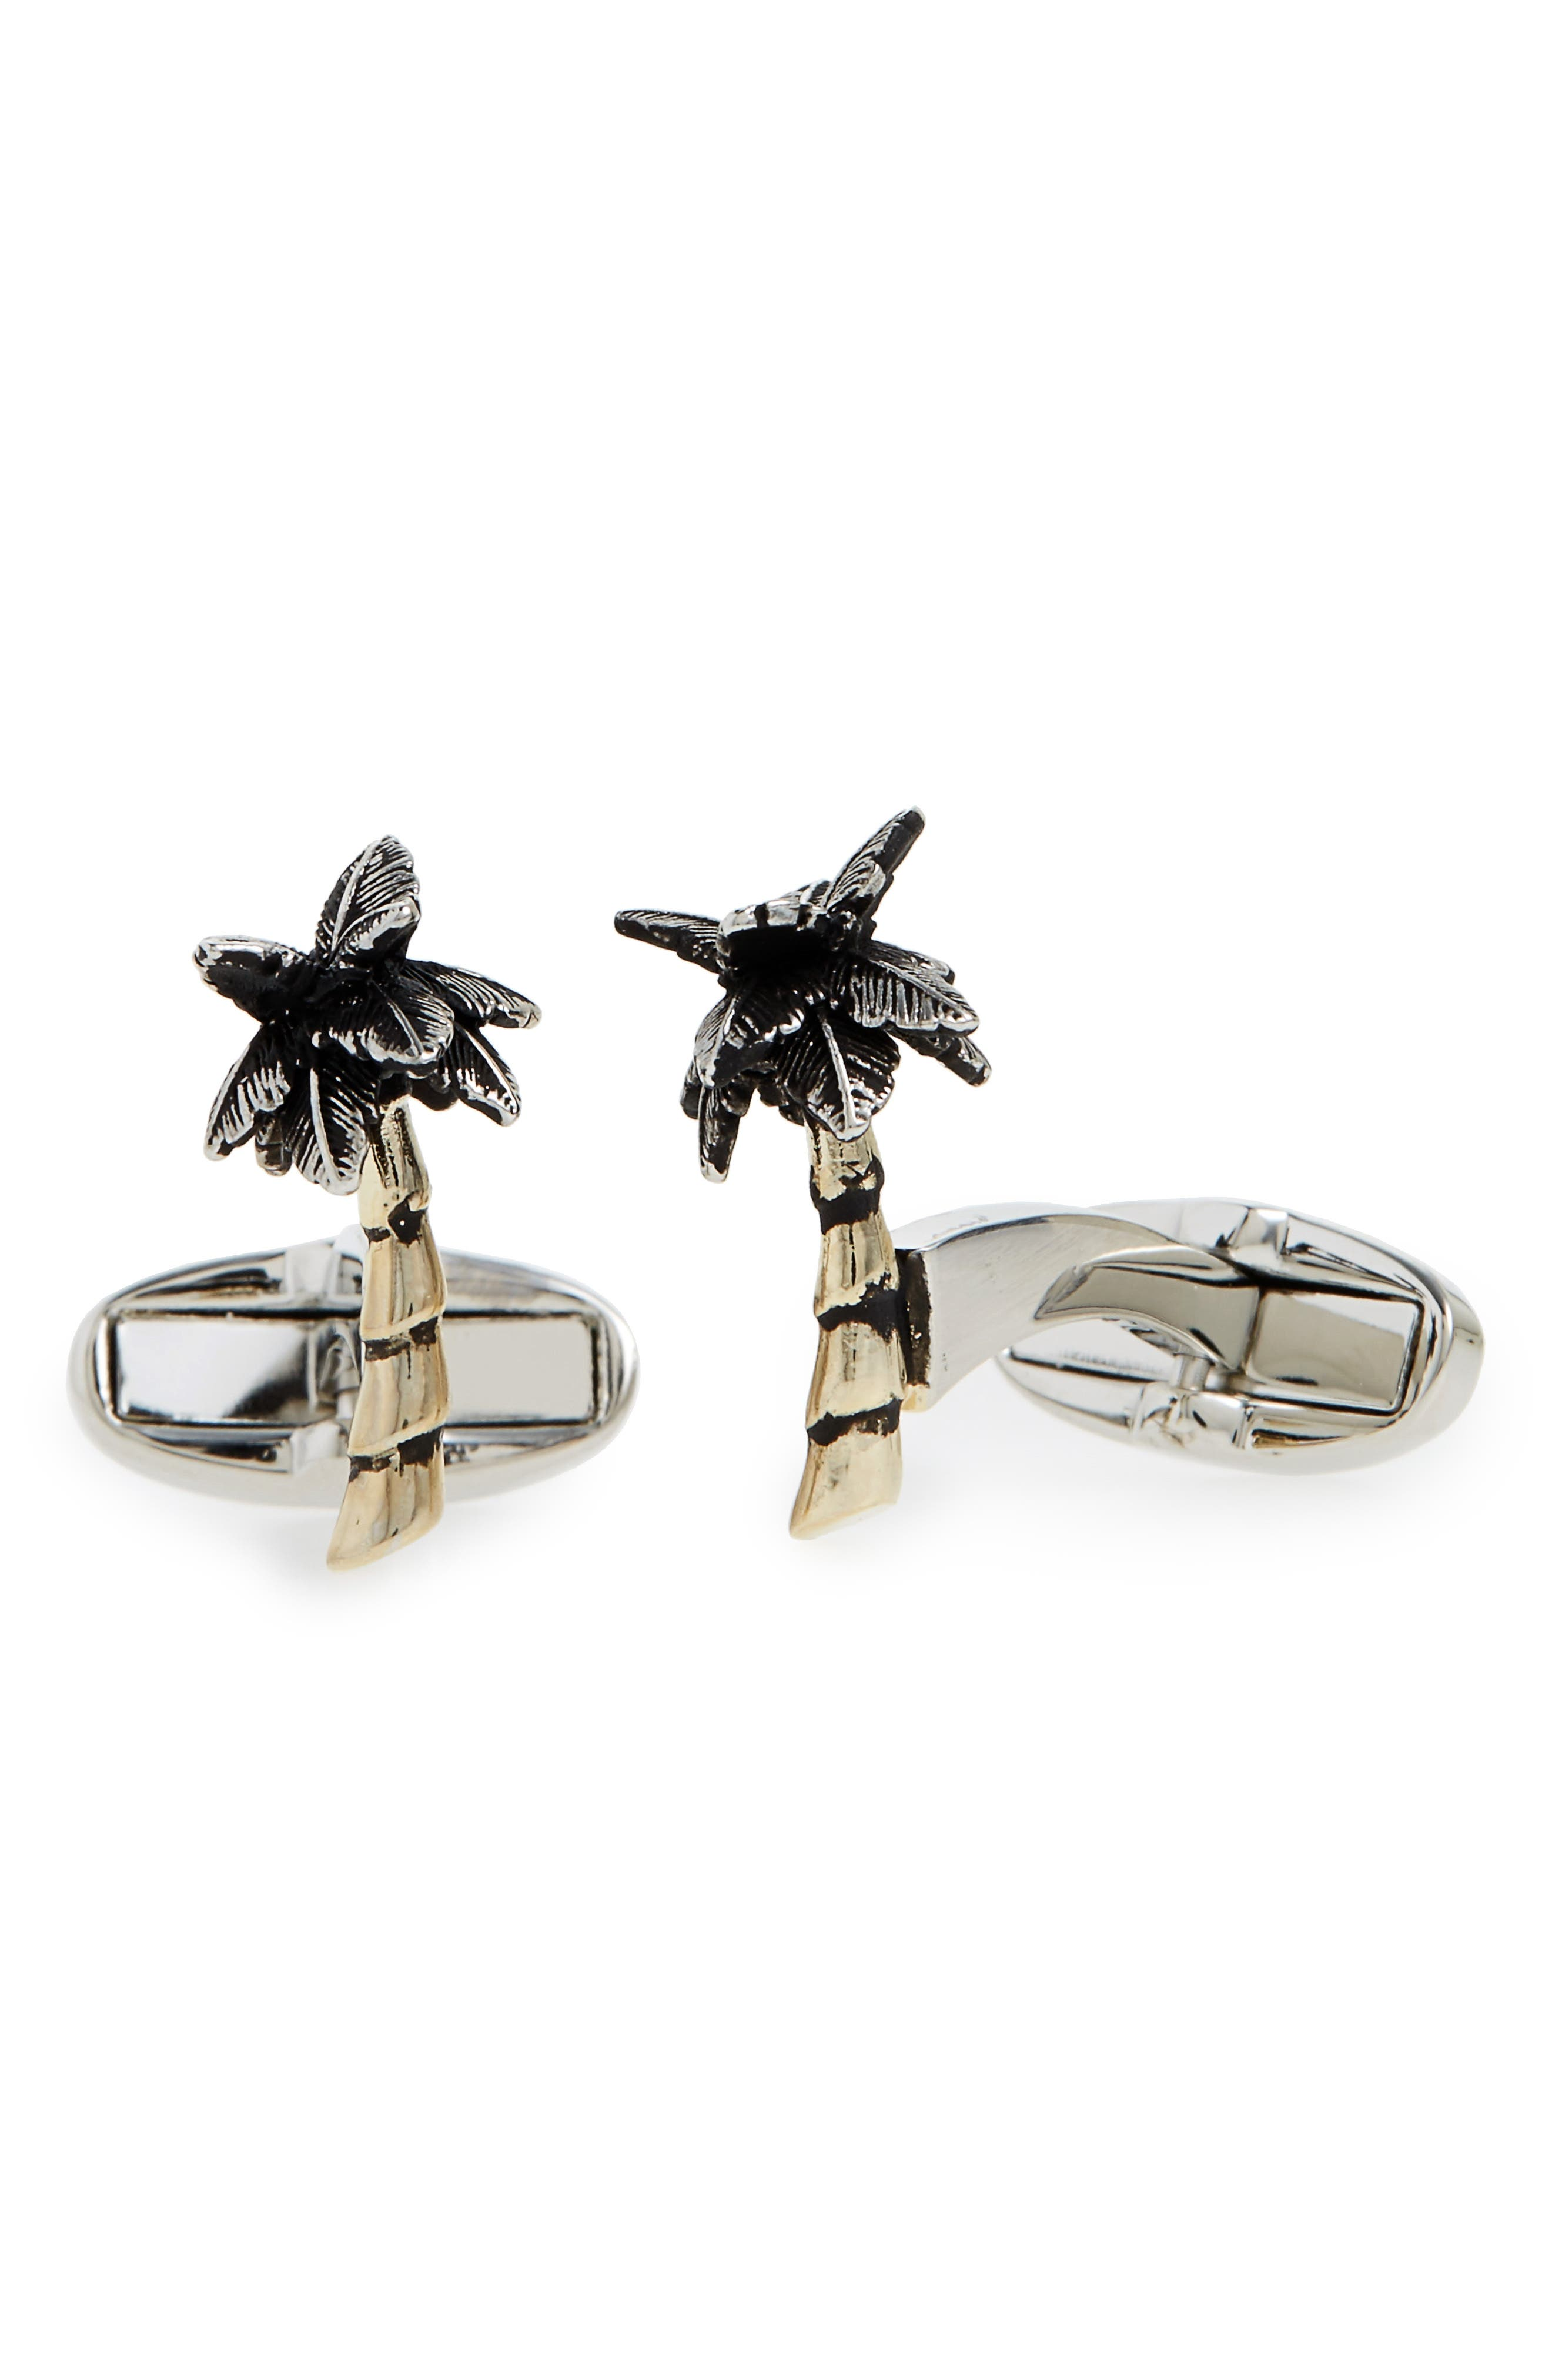 Palm Tree Cuff Links,                             Main thumbnail 1, color,                             Silver